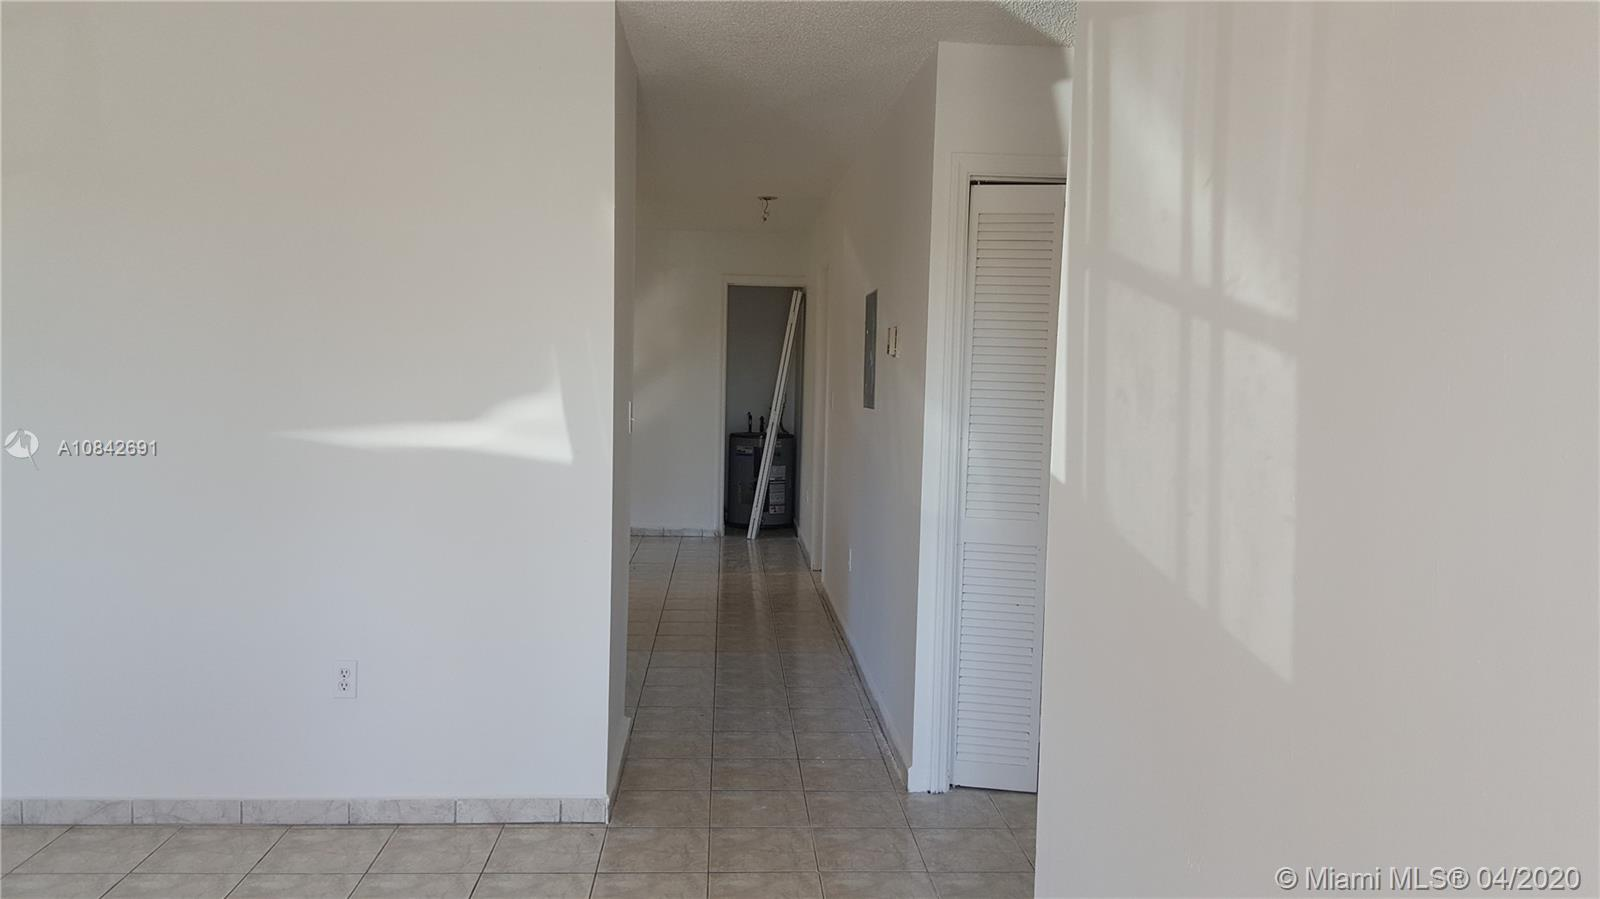 11275 SW 3rd St # 0, Sweetwater, Florida 33174, 3 Bedrooms Bedrooms, ,2 BathroomsBathrooms,Residential Lease,For Rent,11275 SW 3rd St # 0,A10842691